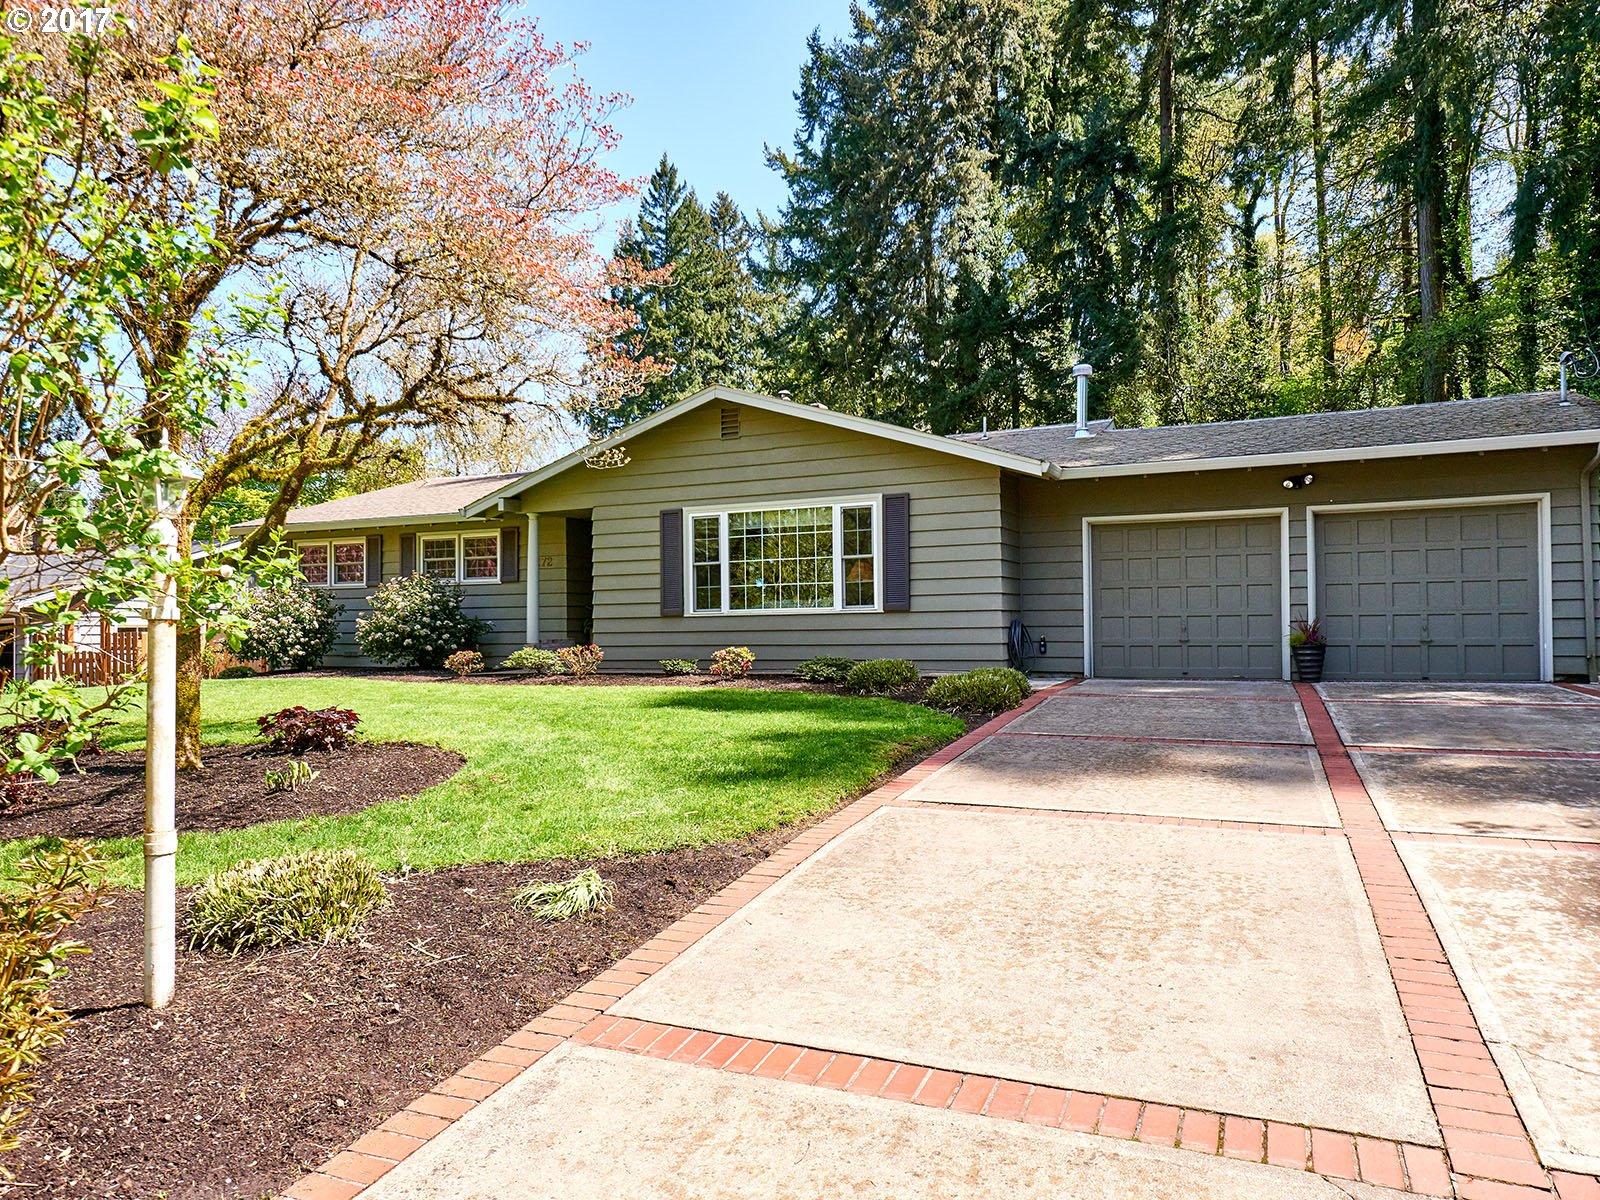 2272 PARK RD, Lake Oswego, OR 97034